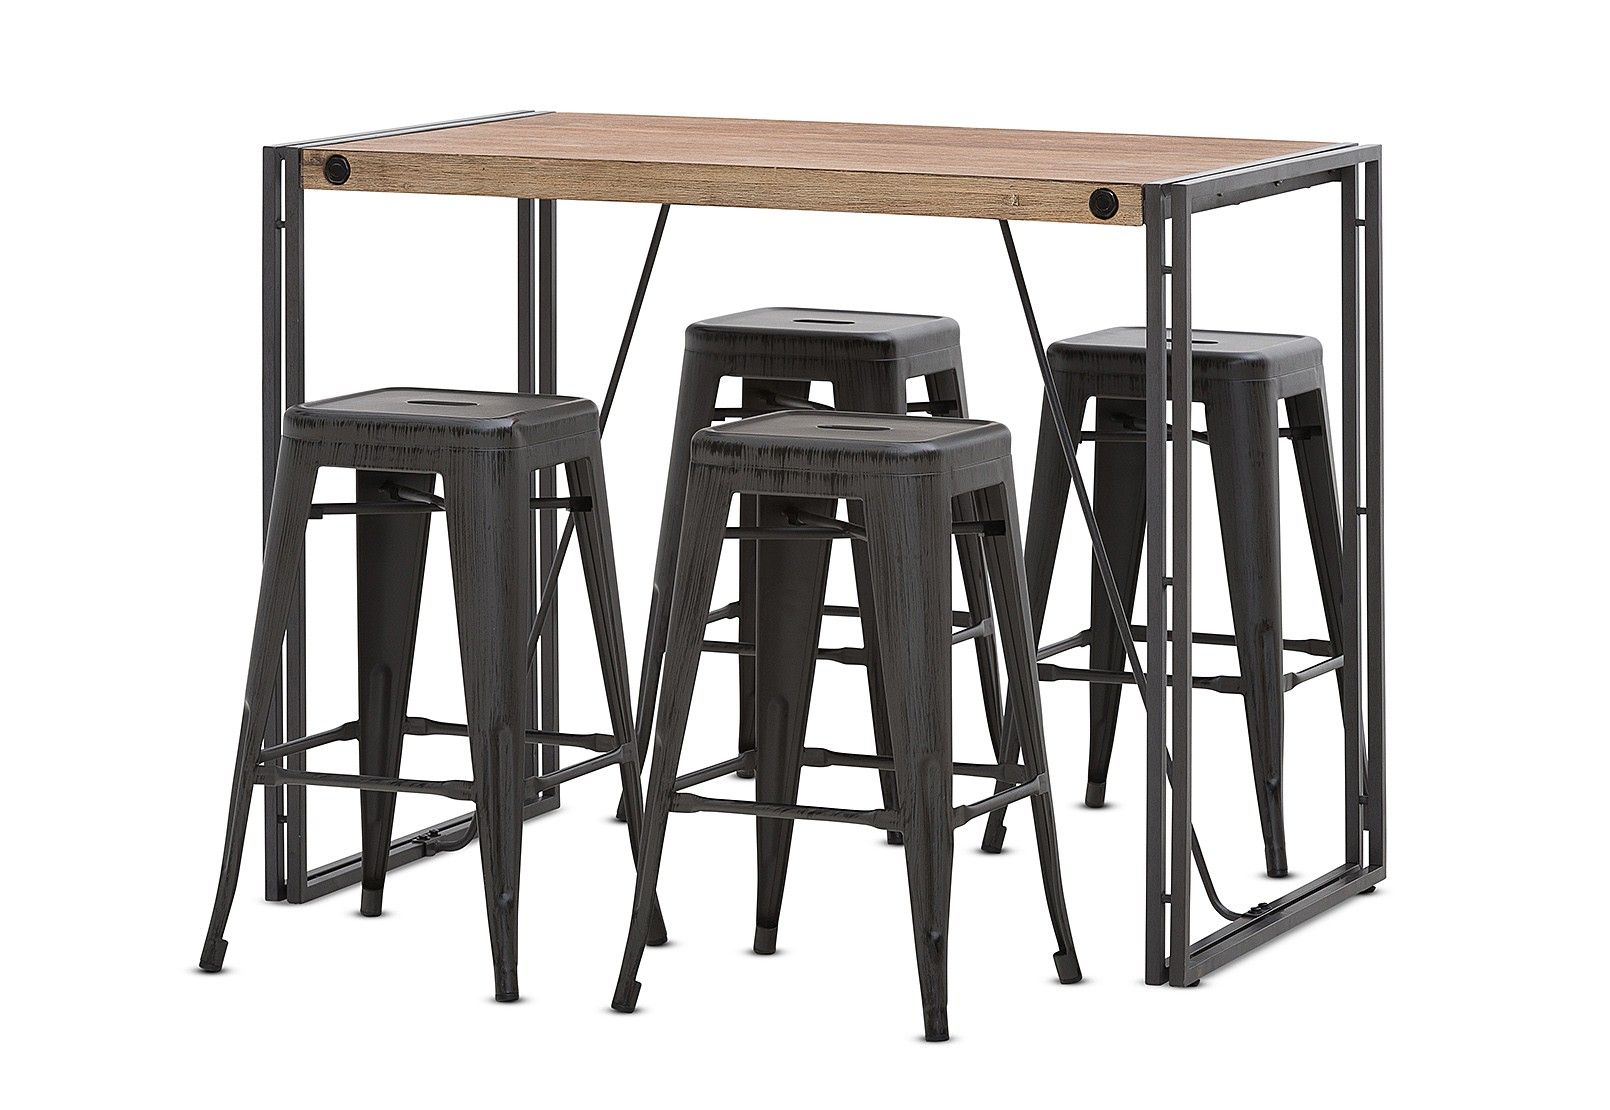 599 Table Amp 4 Stools Amart Bar Set Stool Bar